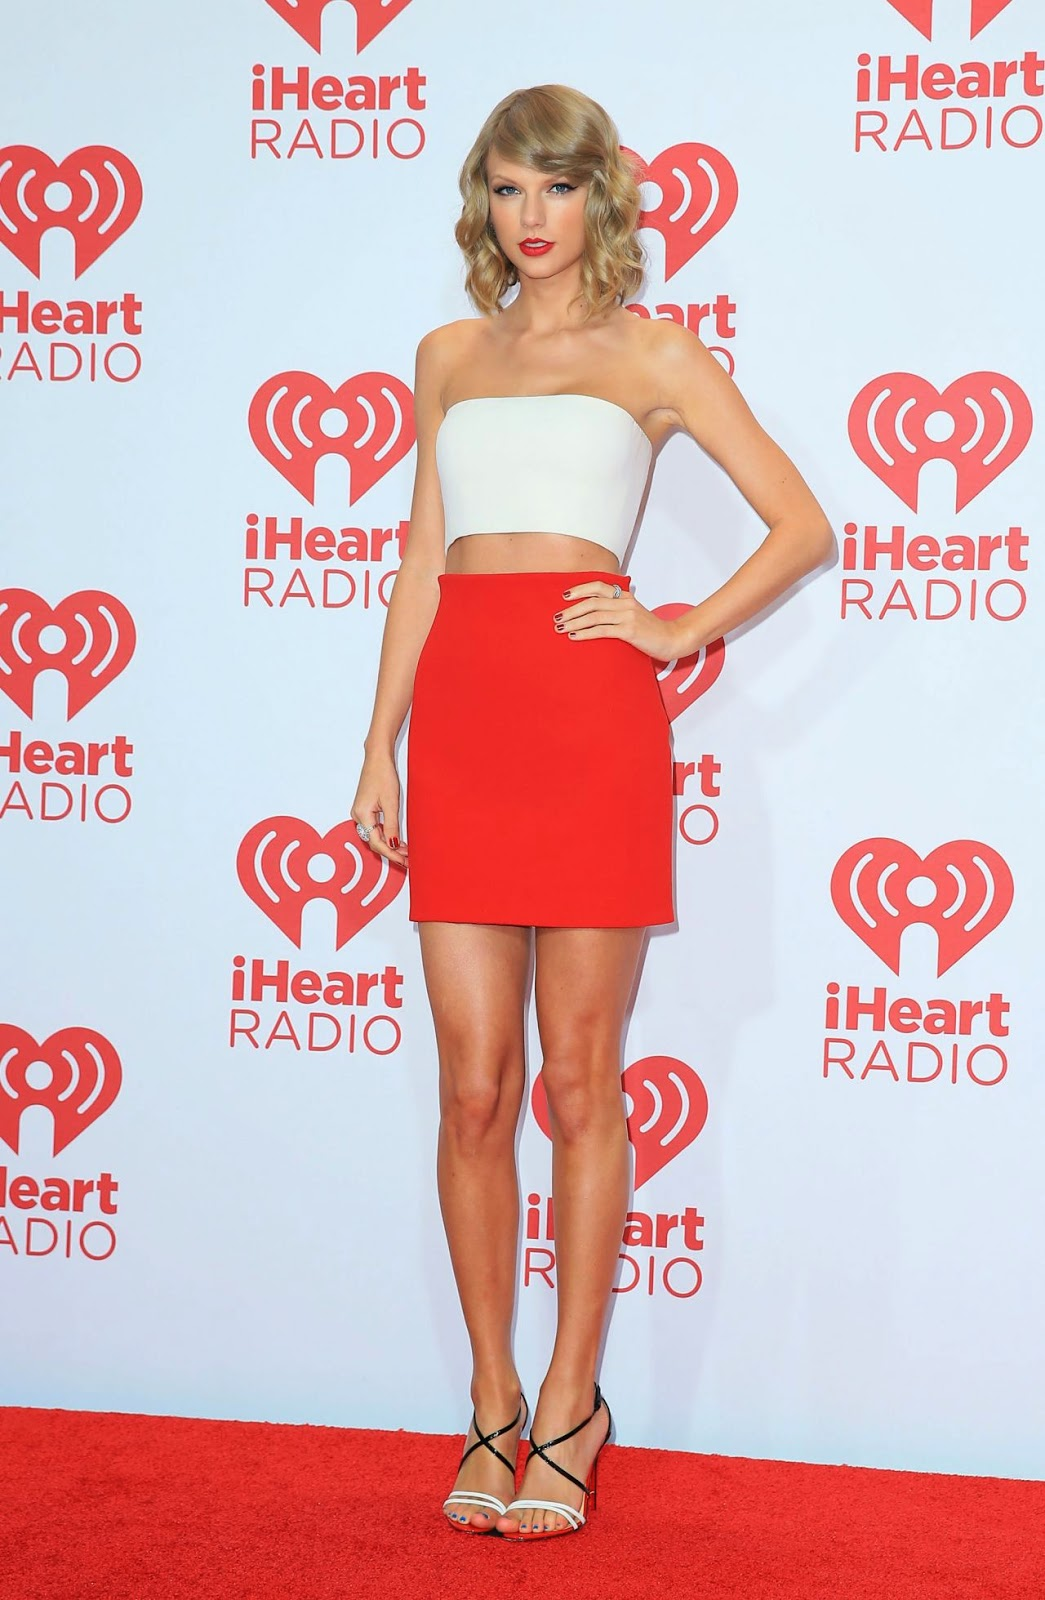 Taylor Swift in a strapless white cropped top and red pencil skirt at the 2014 iHeart Radio Music Festival